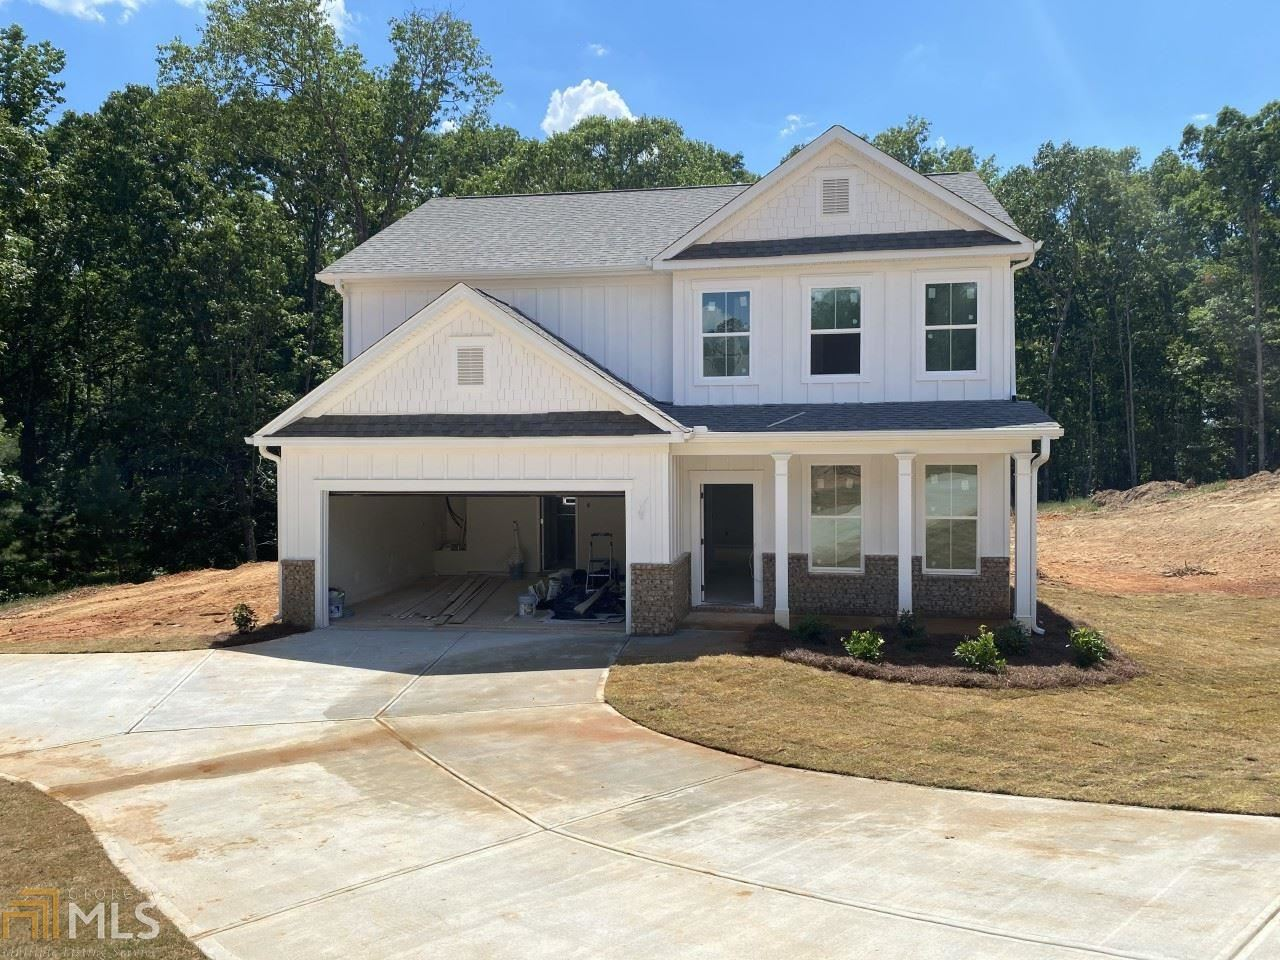 25 Cope Ct, Covington, GA 30016 - #: 8789378